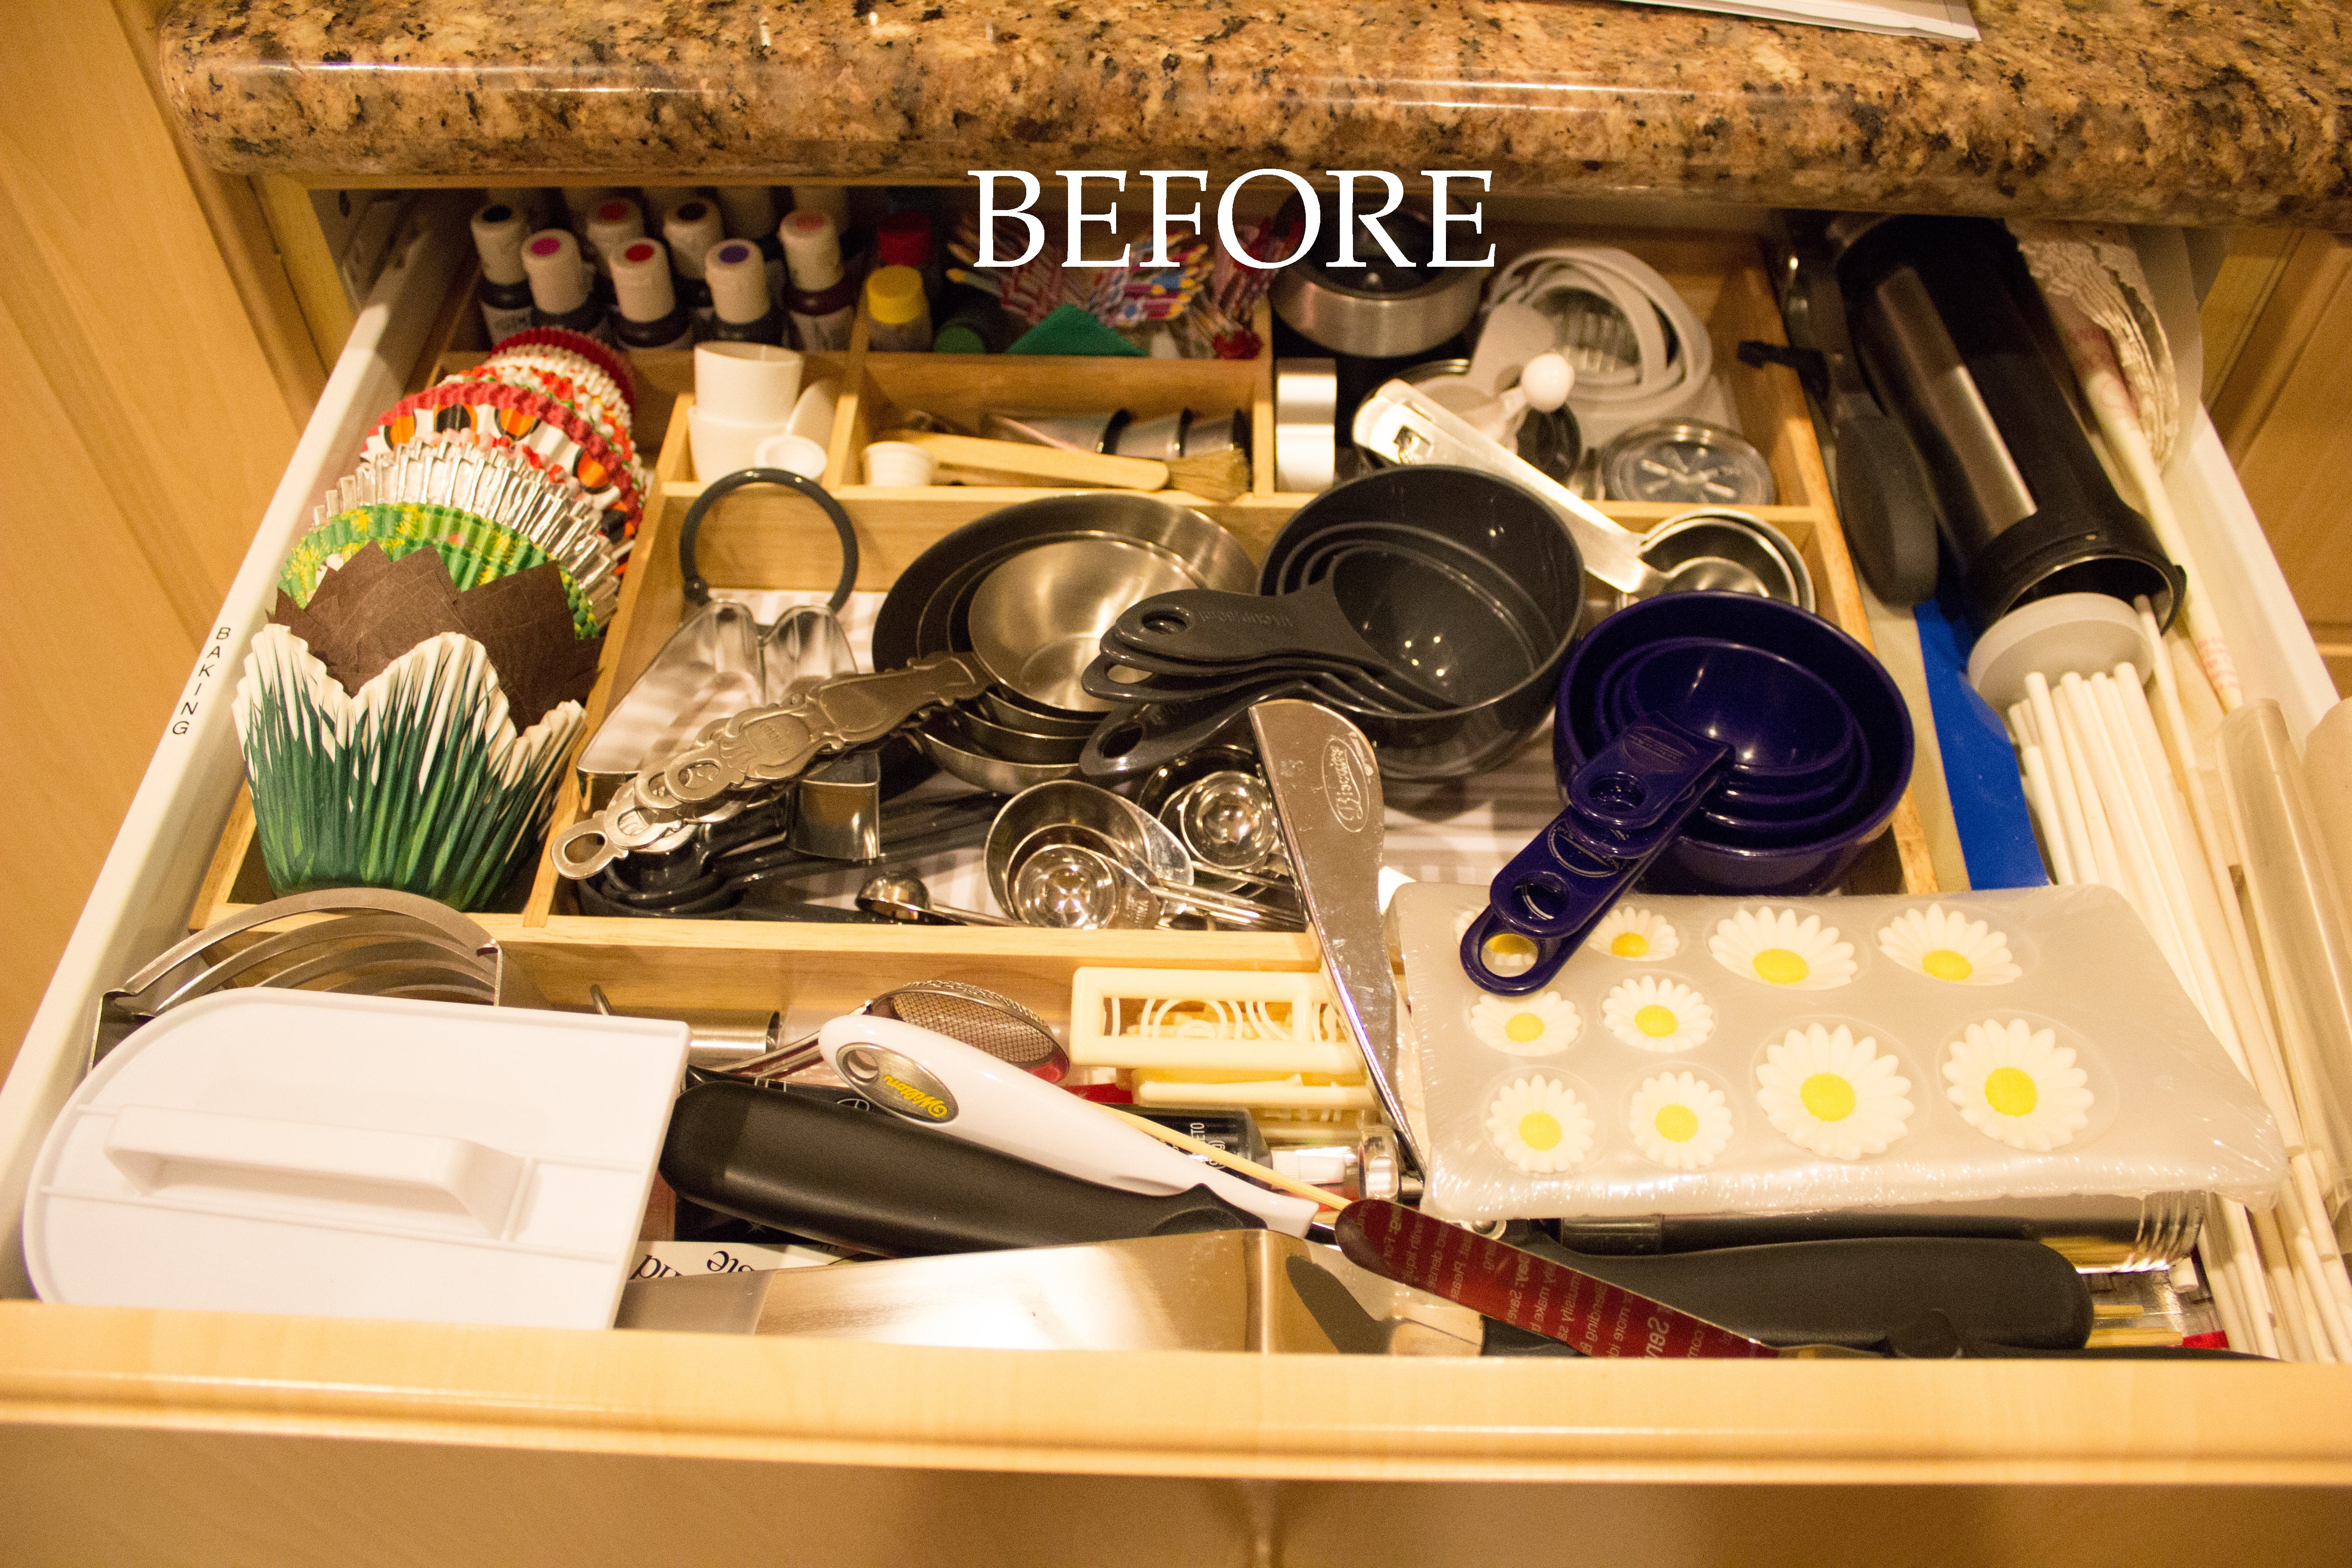 dividers shelves you tray the cutlery kitchen gb ikea dresser variera things in bamboo products drawer organisers organizers organize en helps trays utensil